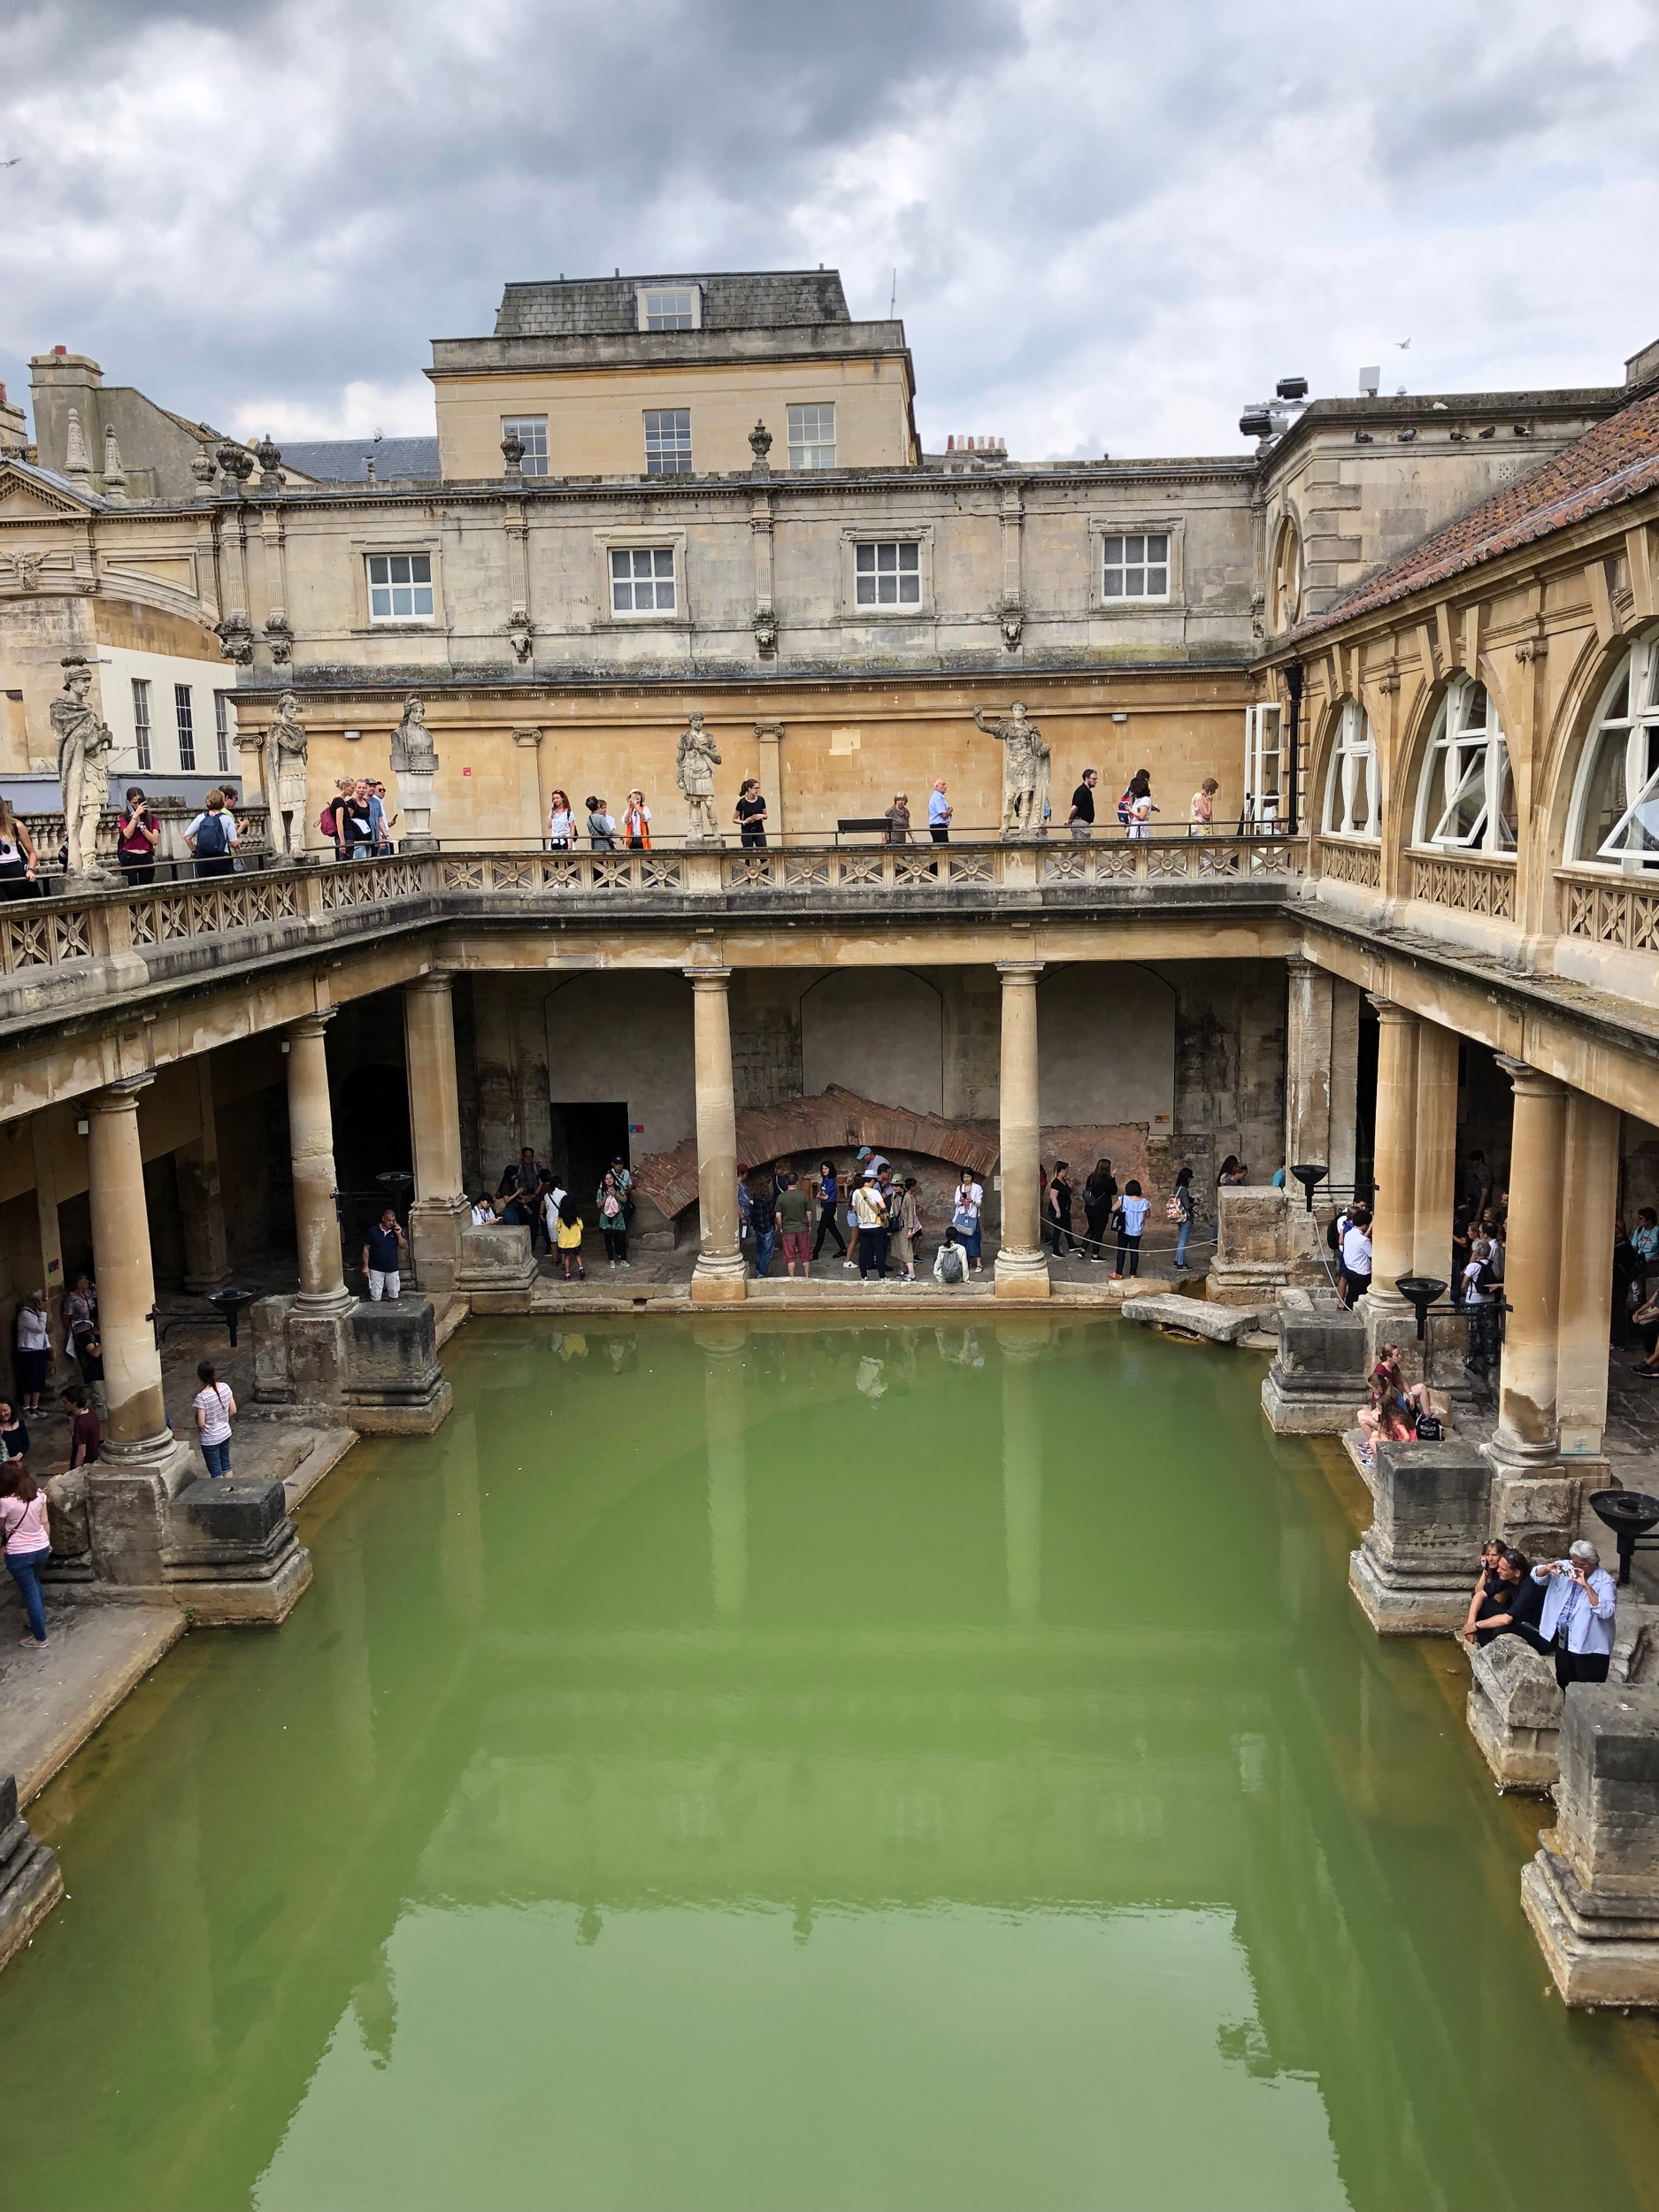 The Roman Baths are incredible feats of engineering. They are the largest hot baths the Romans built in their entire empire due to the fact they had a plentiful supply of hot water from the natural hot springs. They were very clever those Romans.